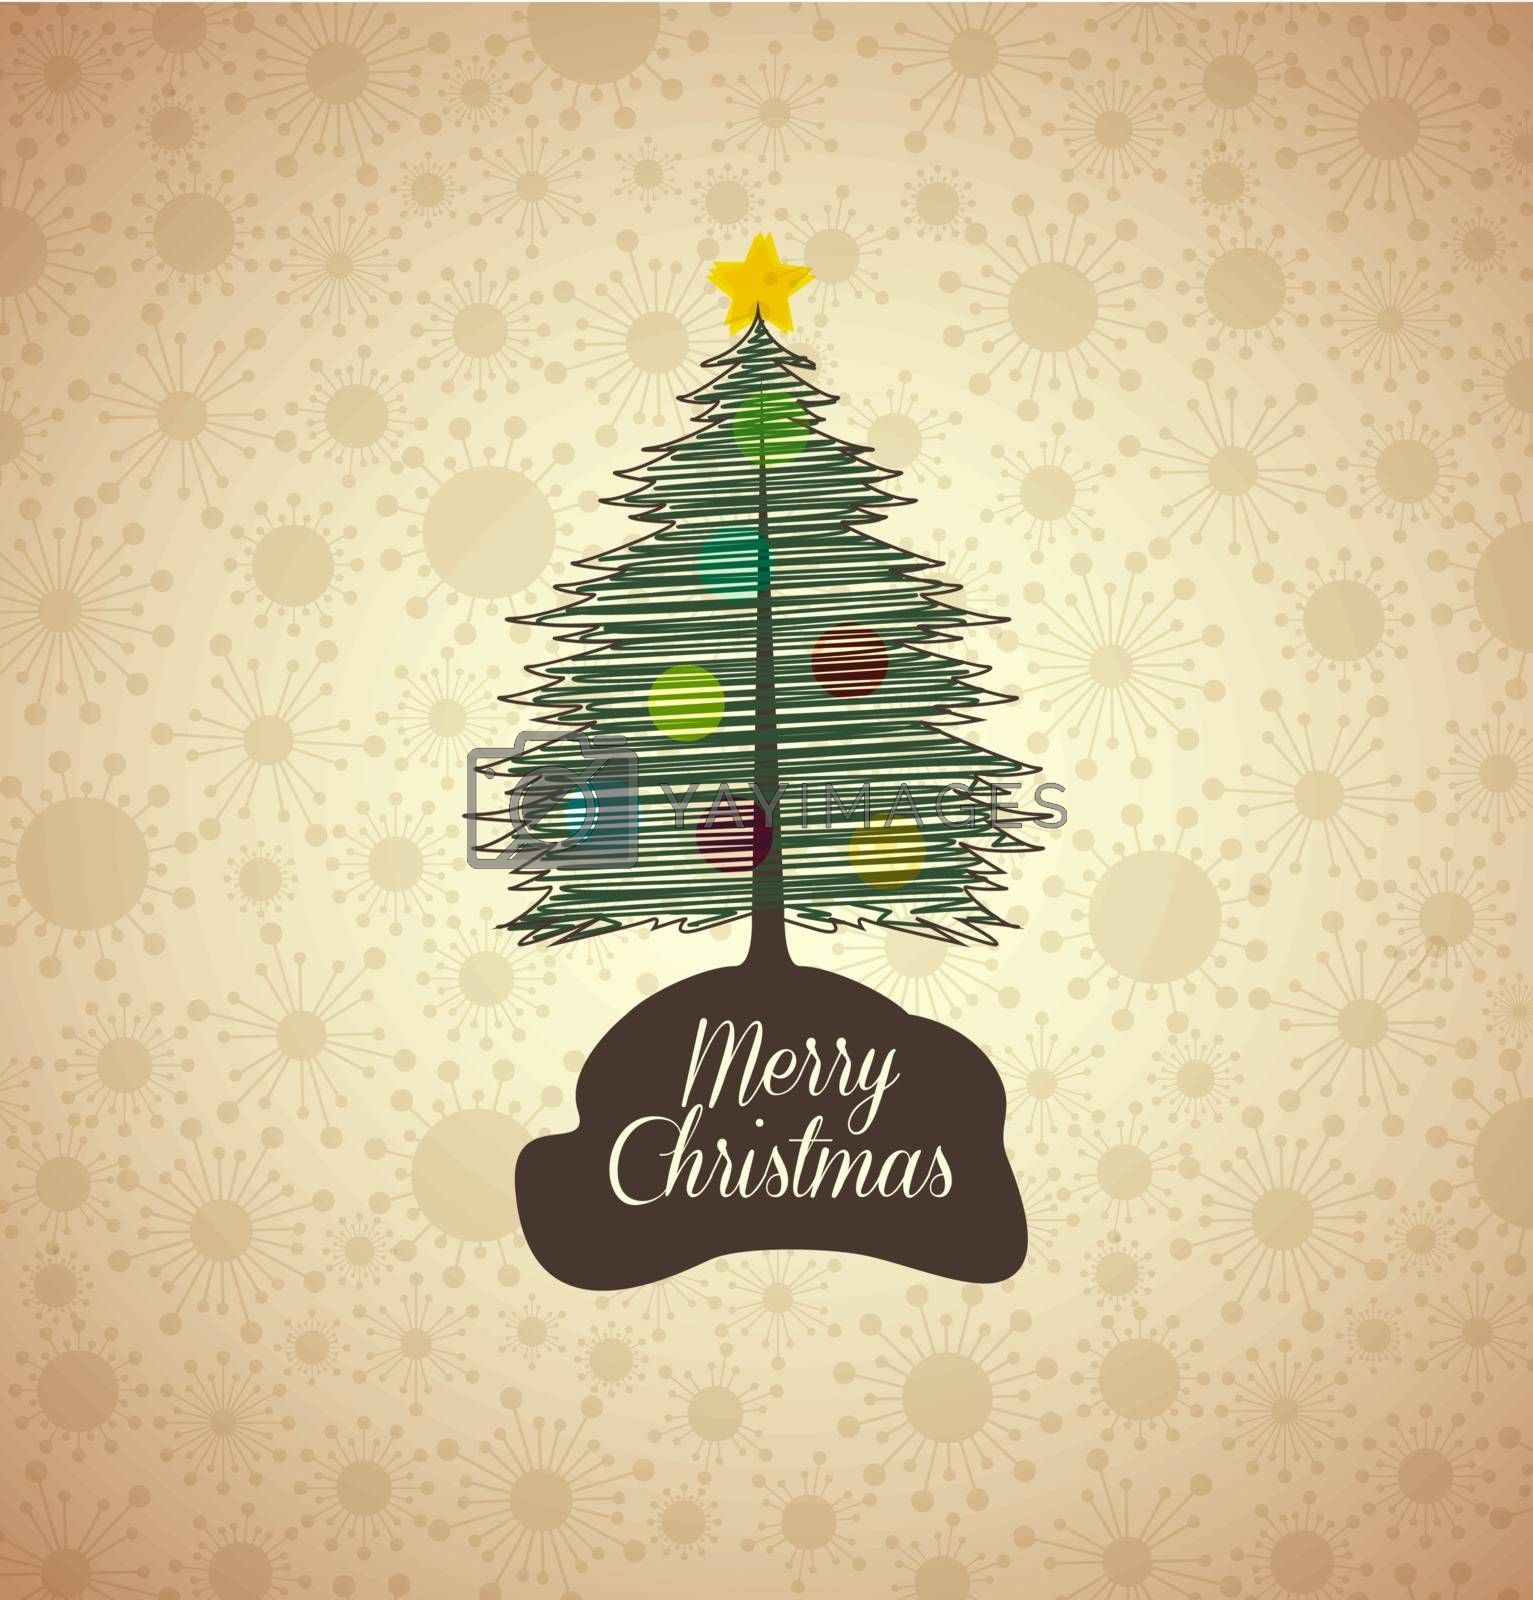 background with Christmas tree, vector illustration